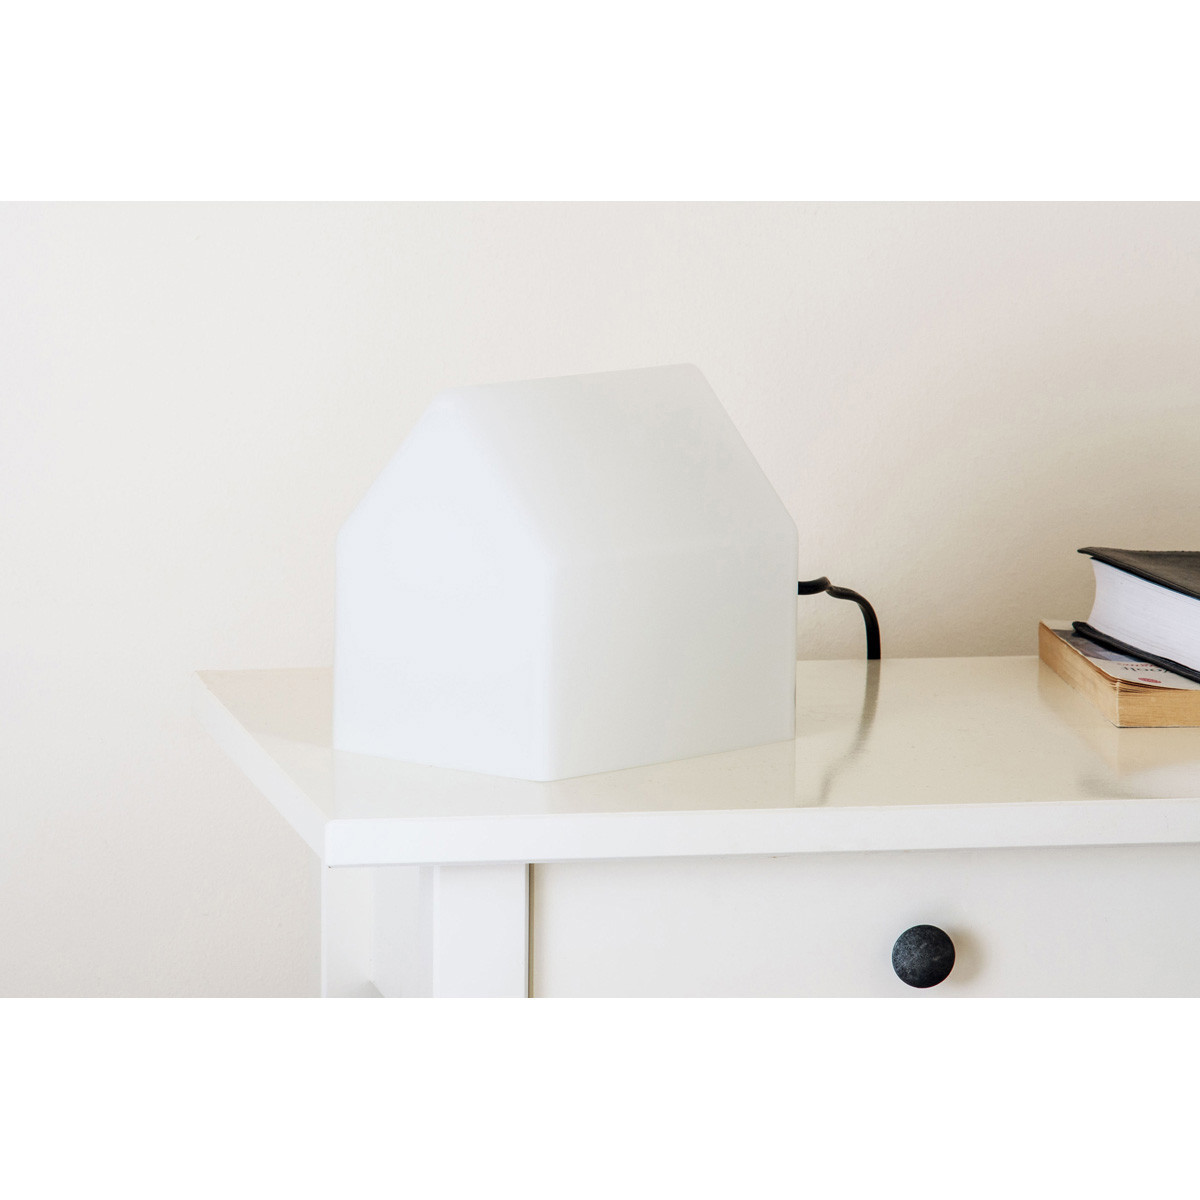 Bookrest Lamp by Suck UK (off)